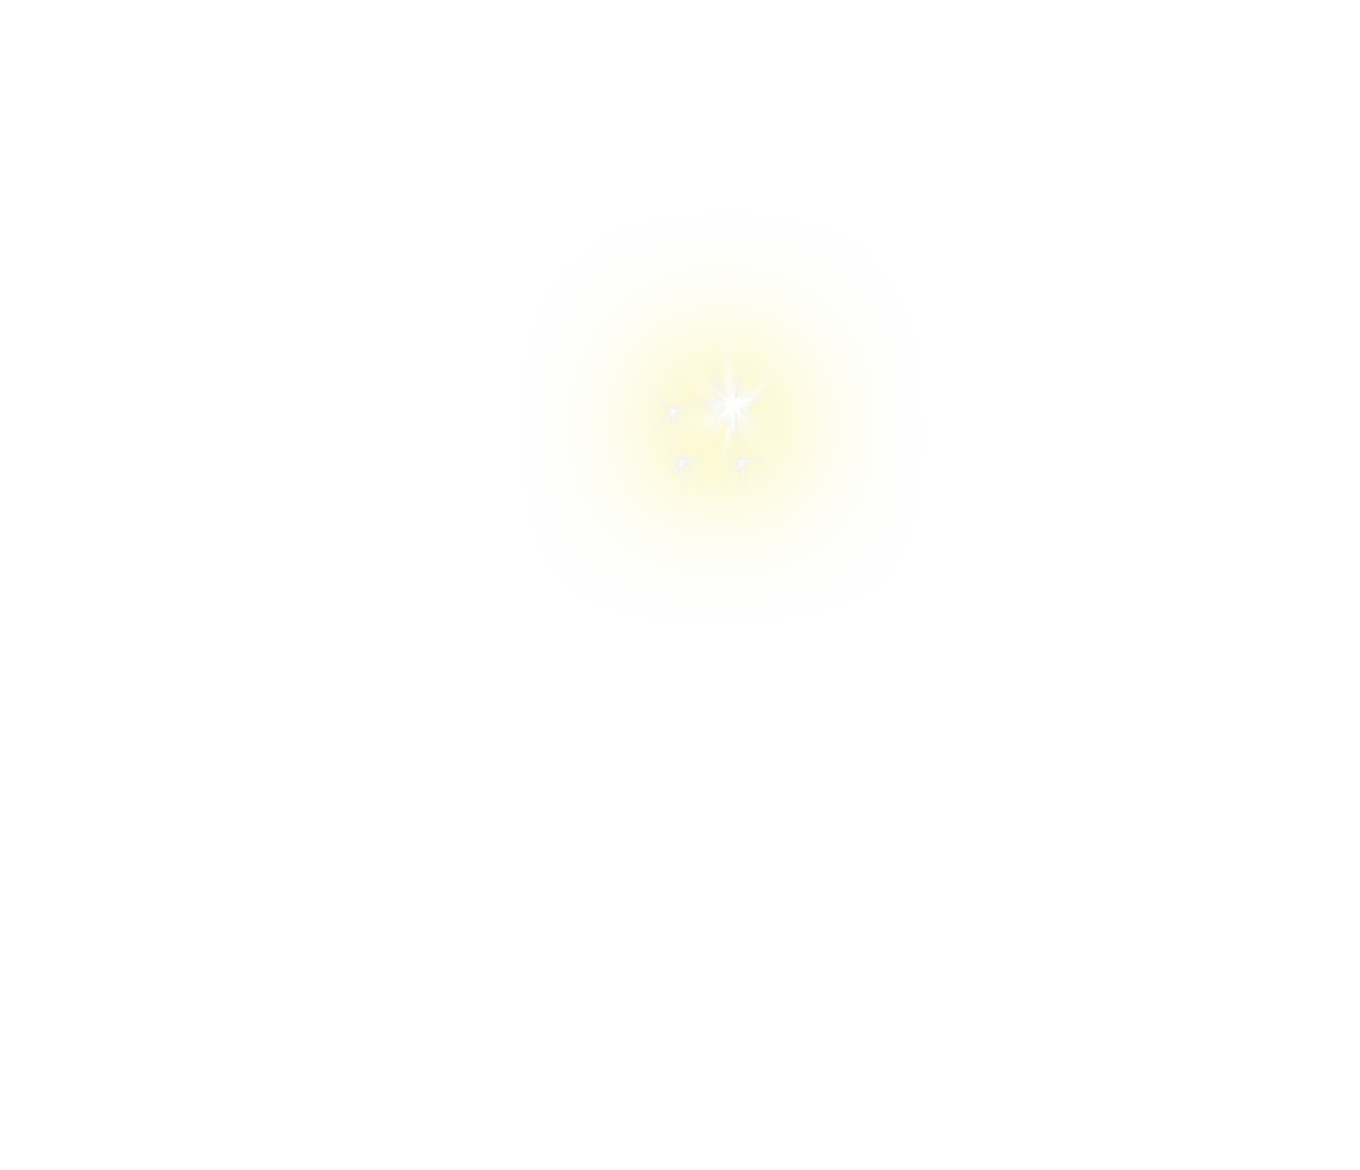 White sparkles png. Sparkle yellow